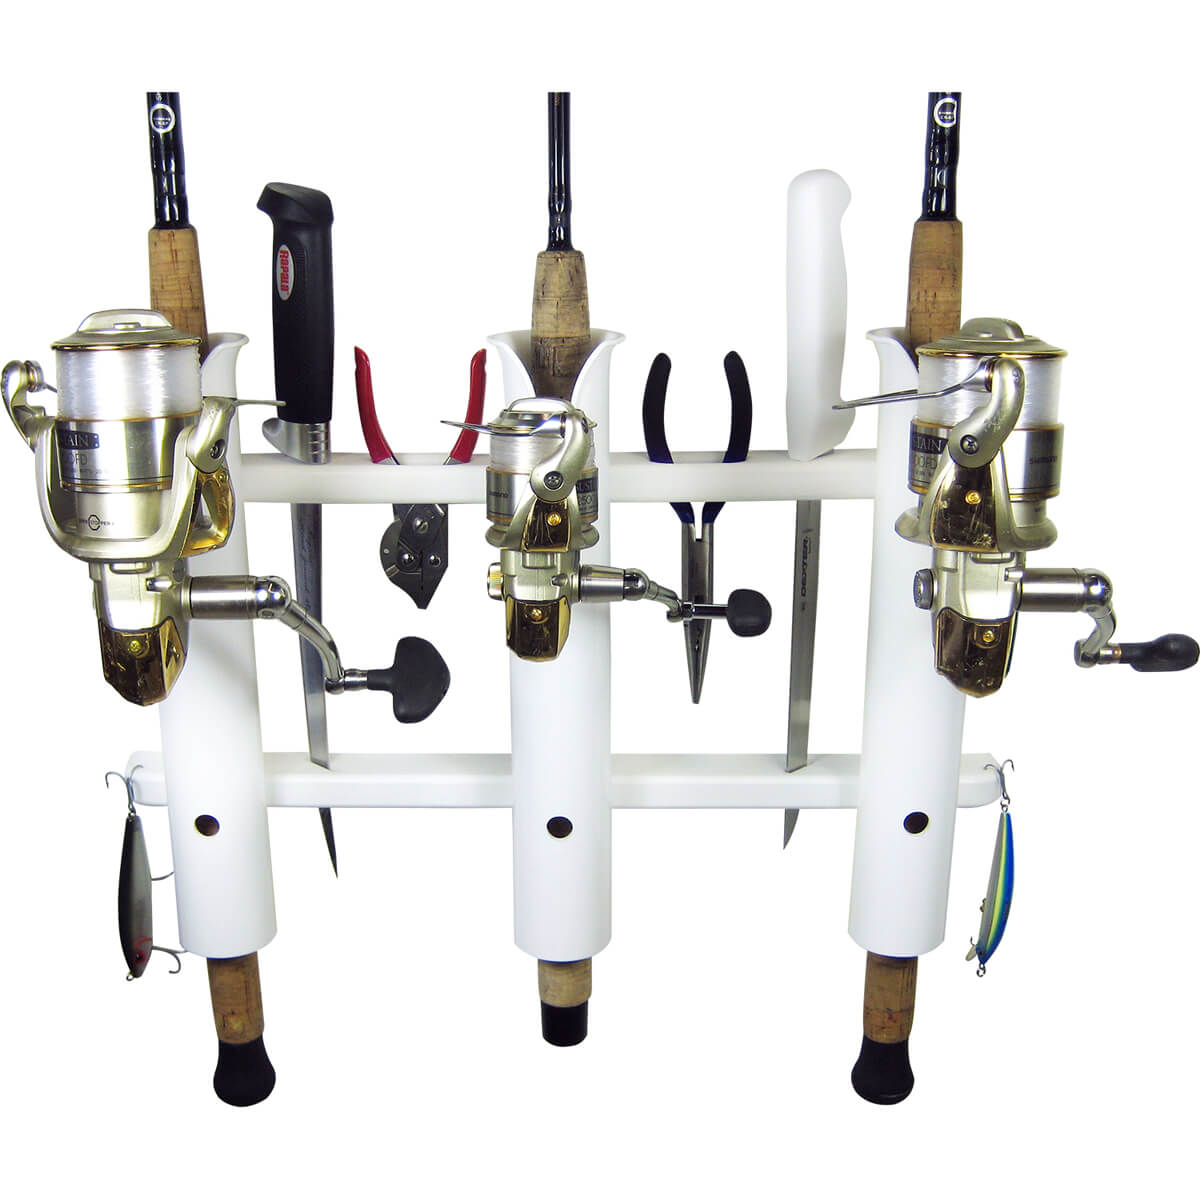 3 rod deluxe fishing rod holder rack white boat outfitters for Fishing pole holders for boats